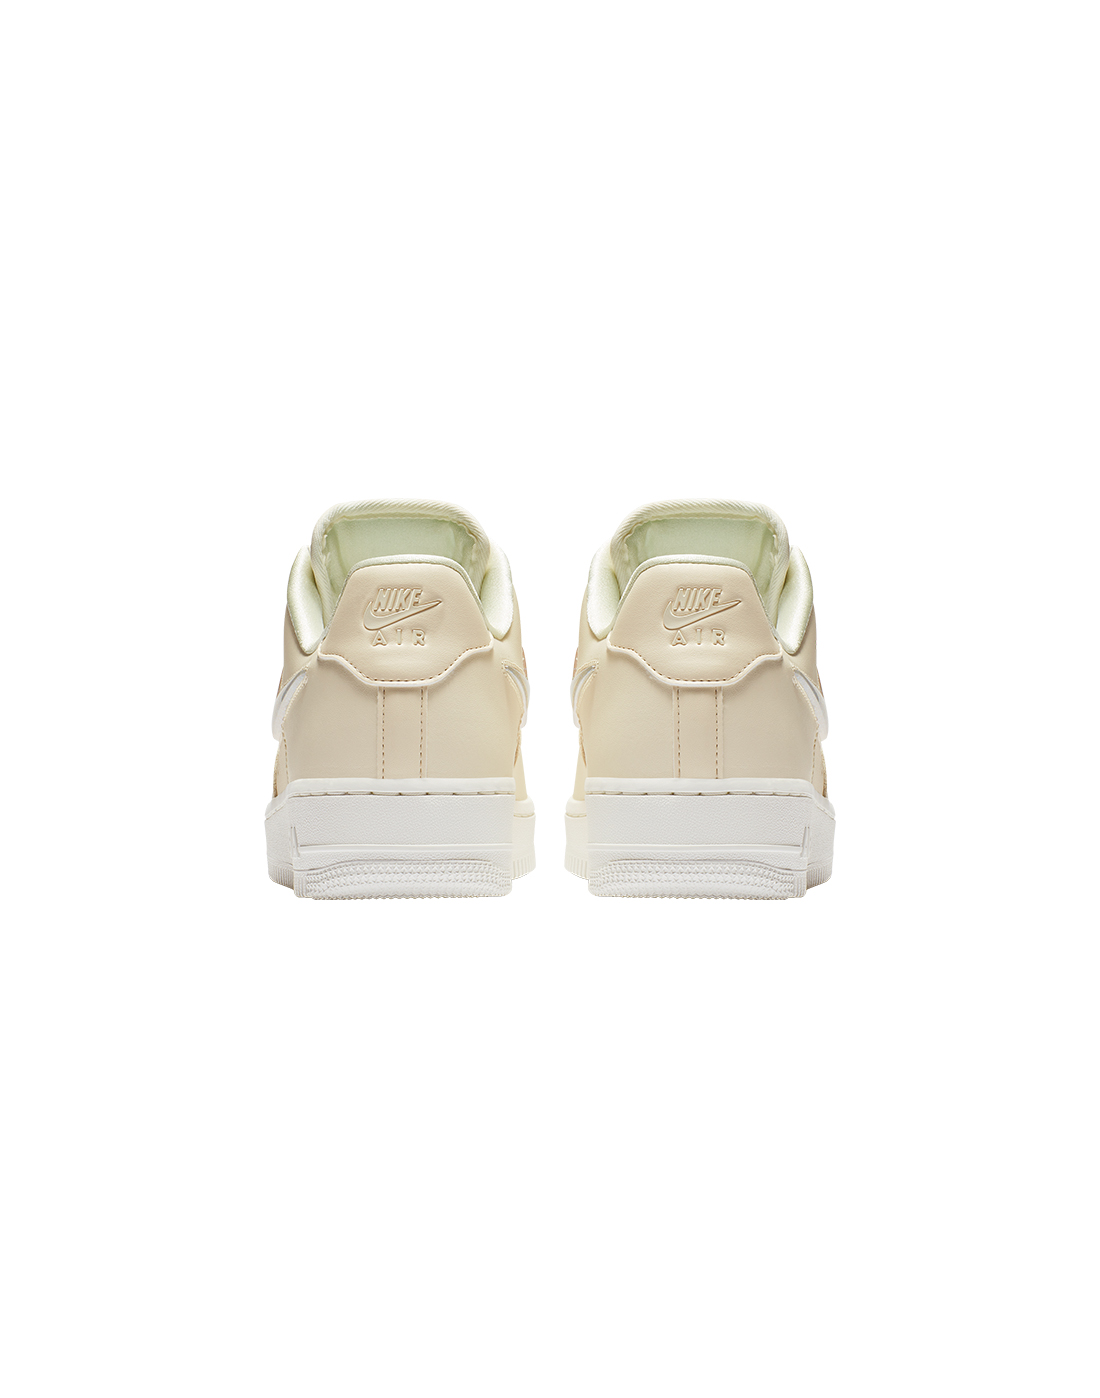 Women's Cream Nike Air Force 1 Jelly Puff | Life Style Sports